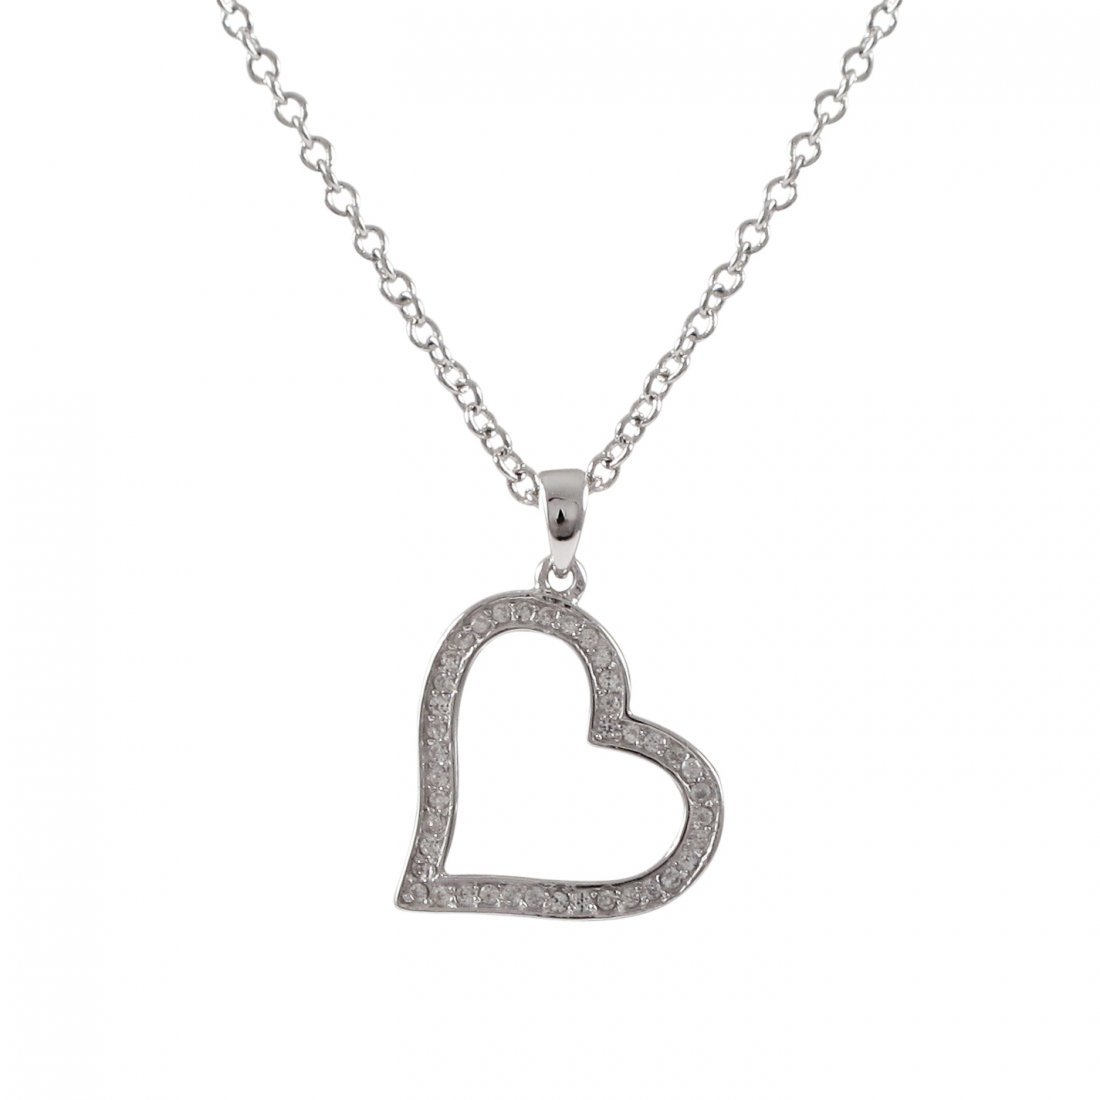 Rhodium Plated Sterling Silver Open Heart CZ Pendant, 2